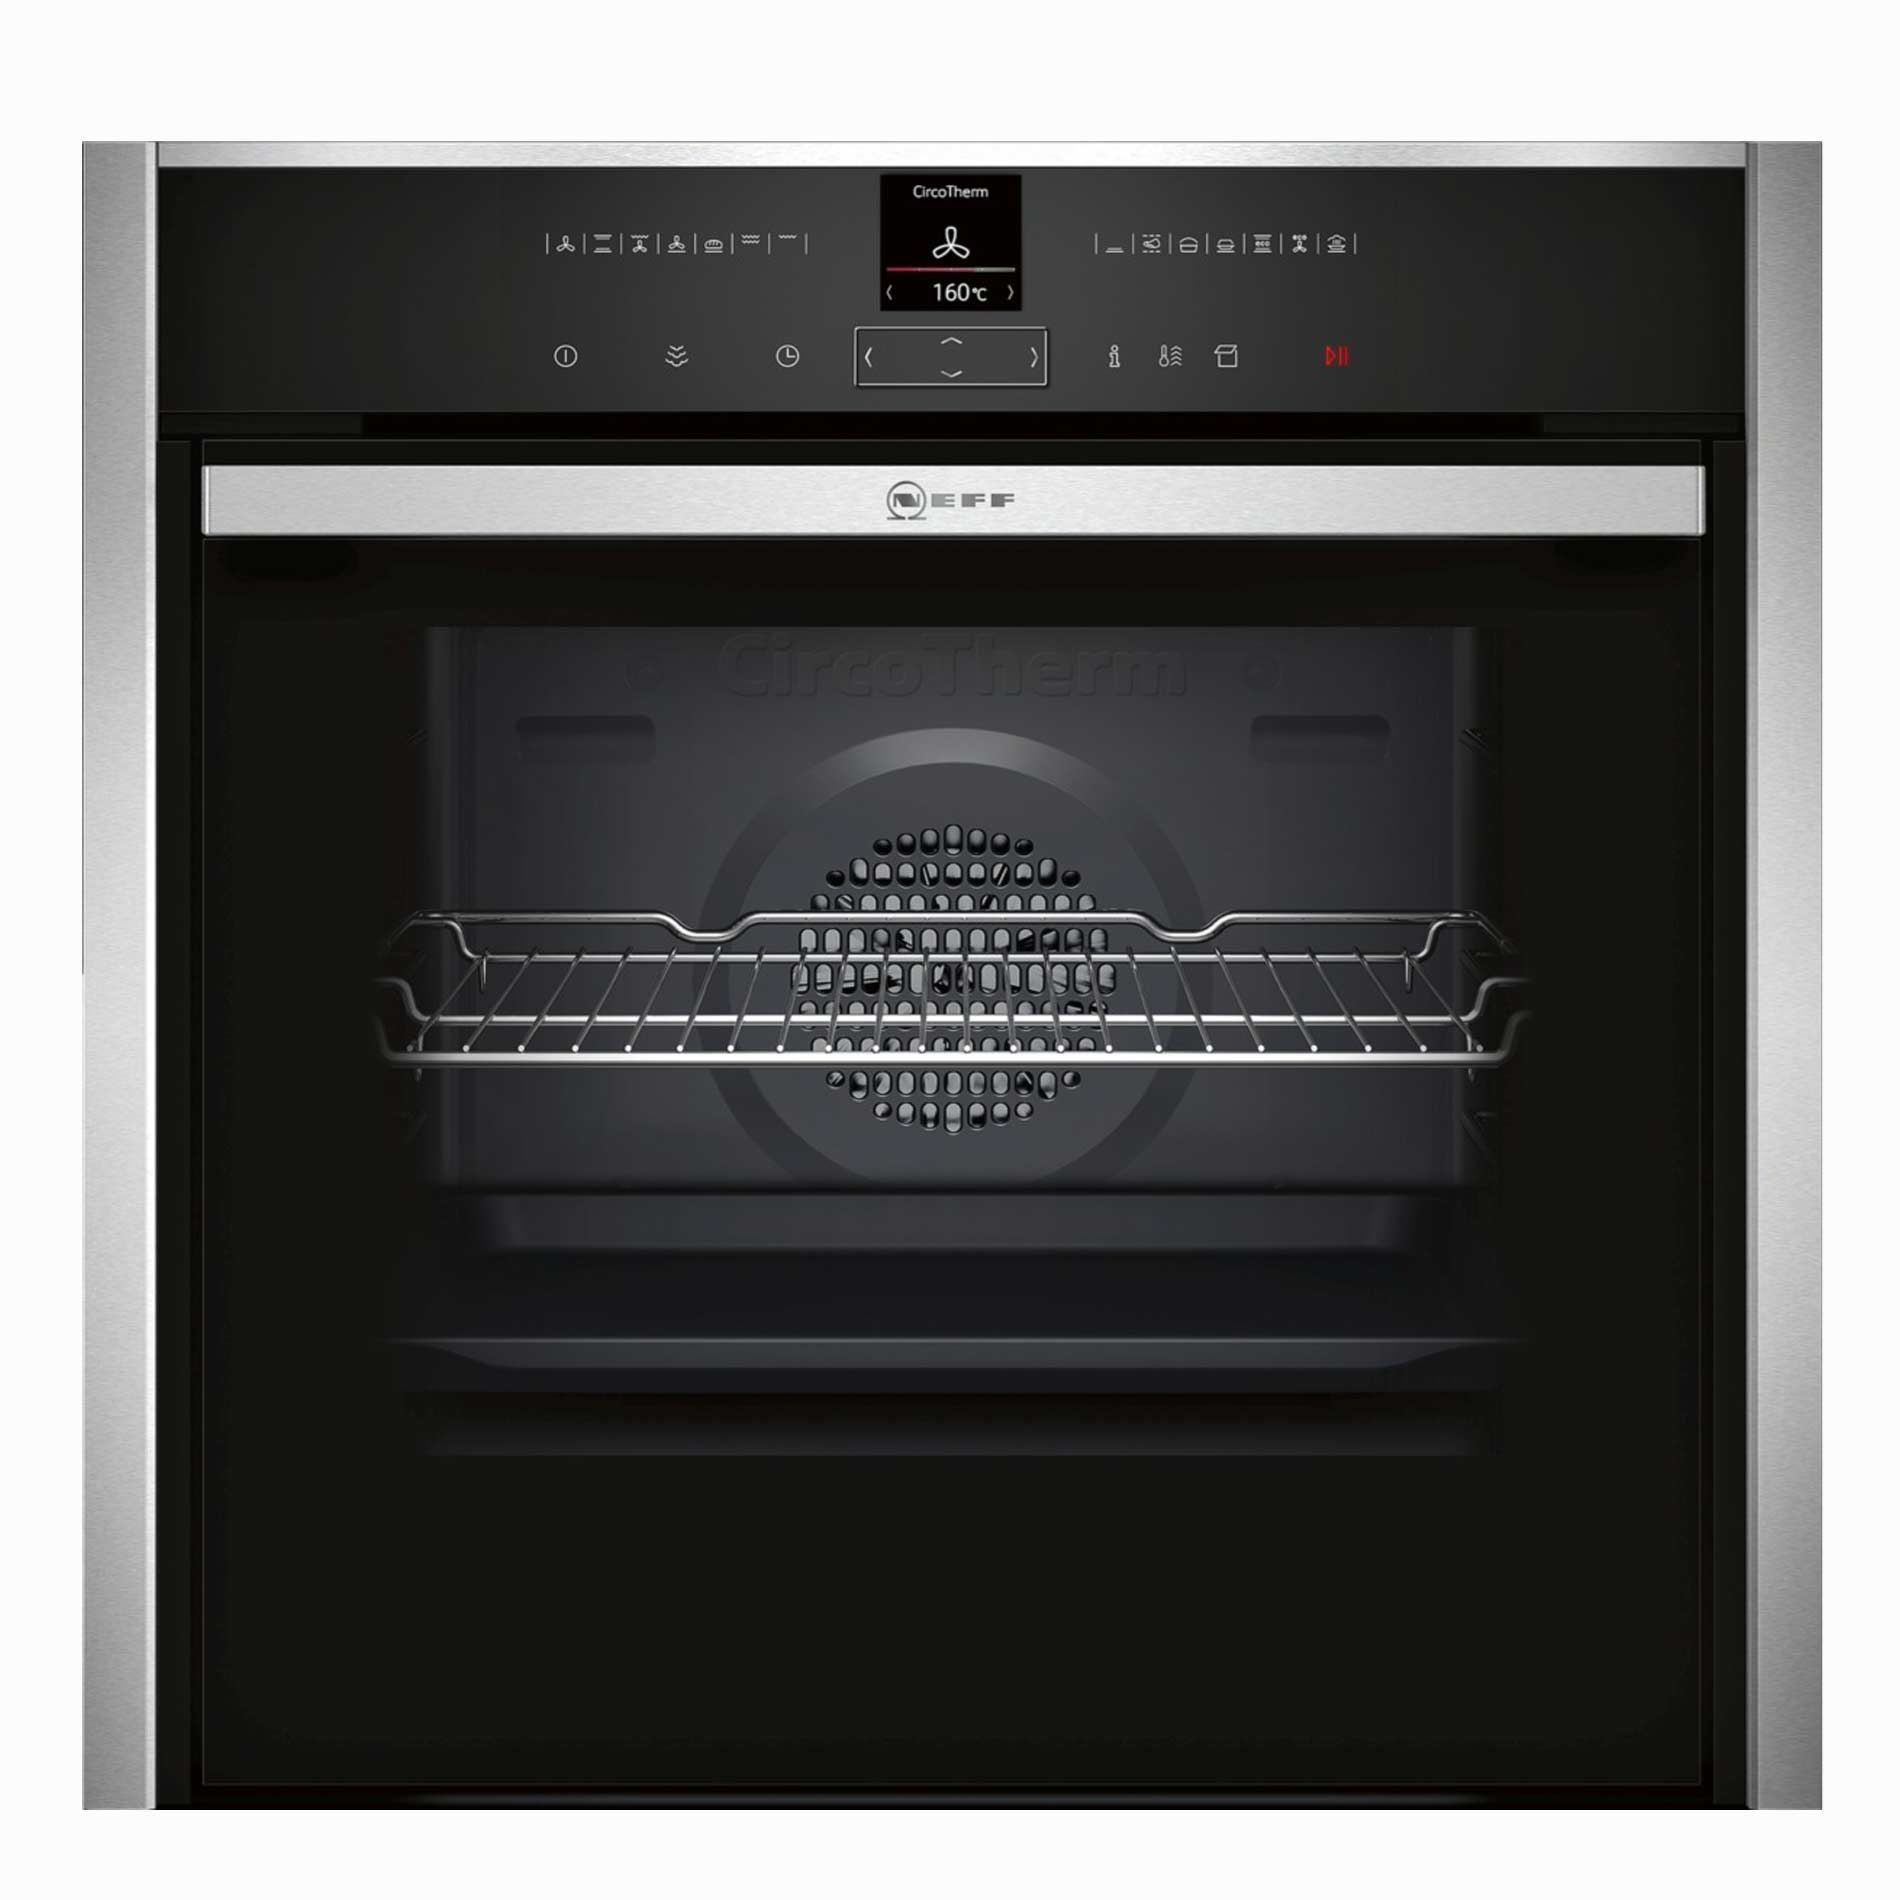 Picture of B47VR32N0B Stainless Steel Oven with VarioSteam